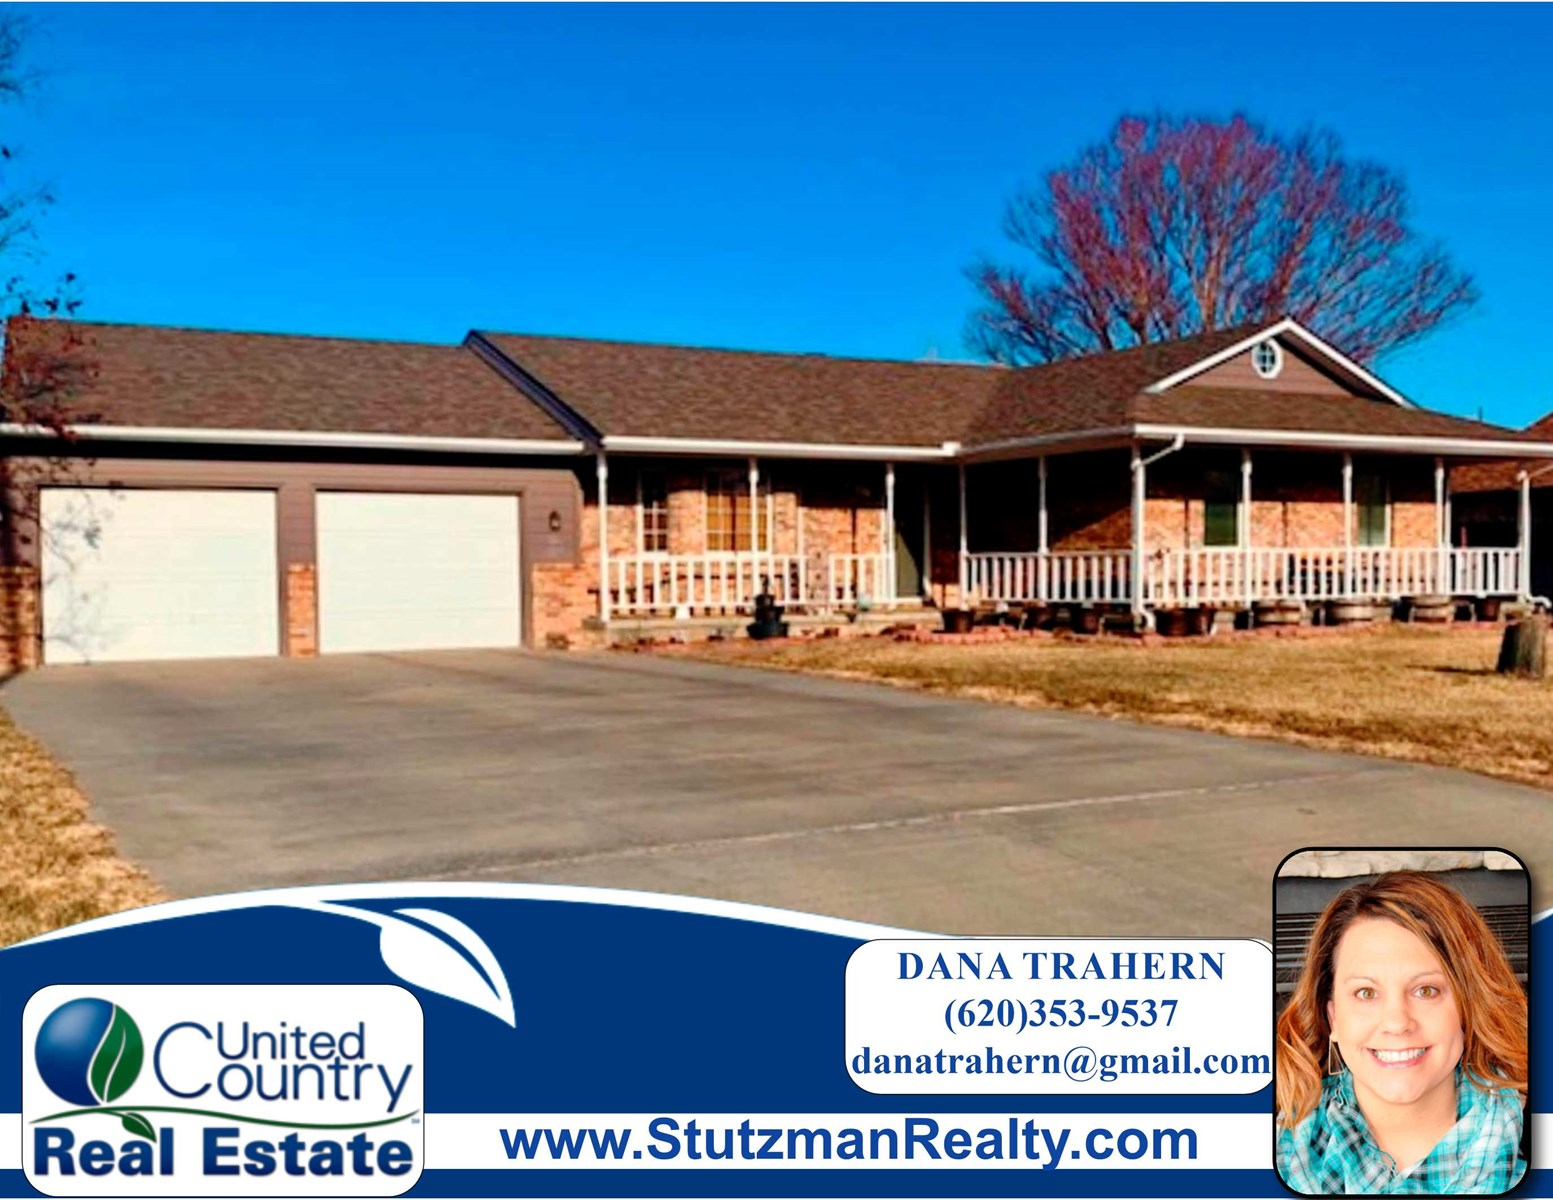 FOUR BEDROOM HOME FOR SALE IN ULYSSES, KS